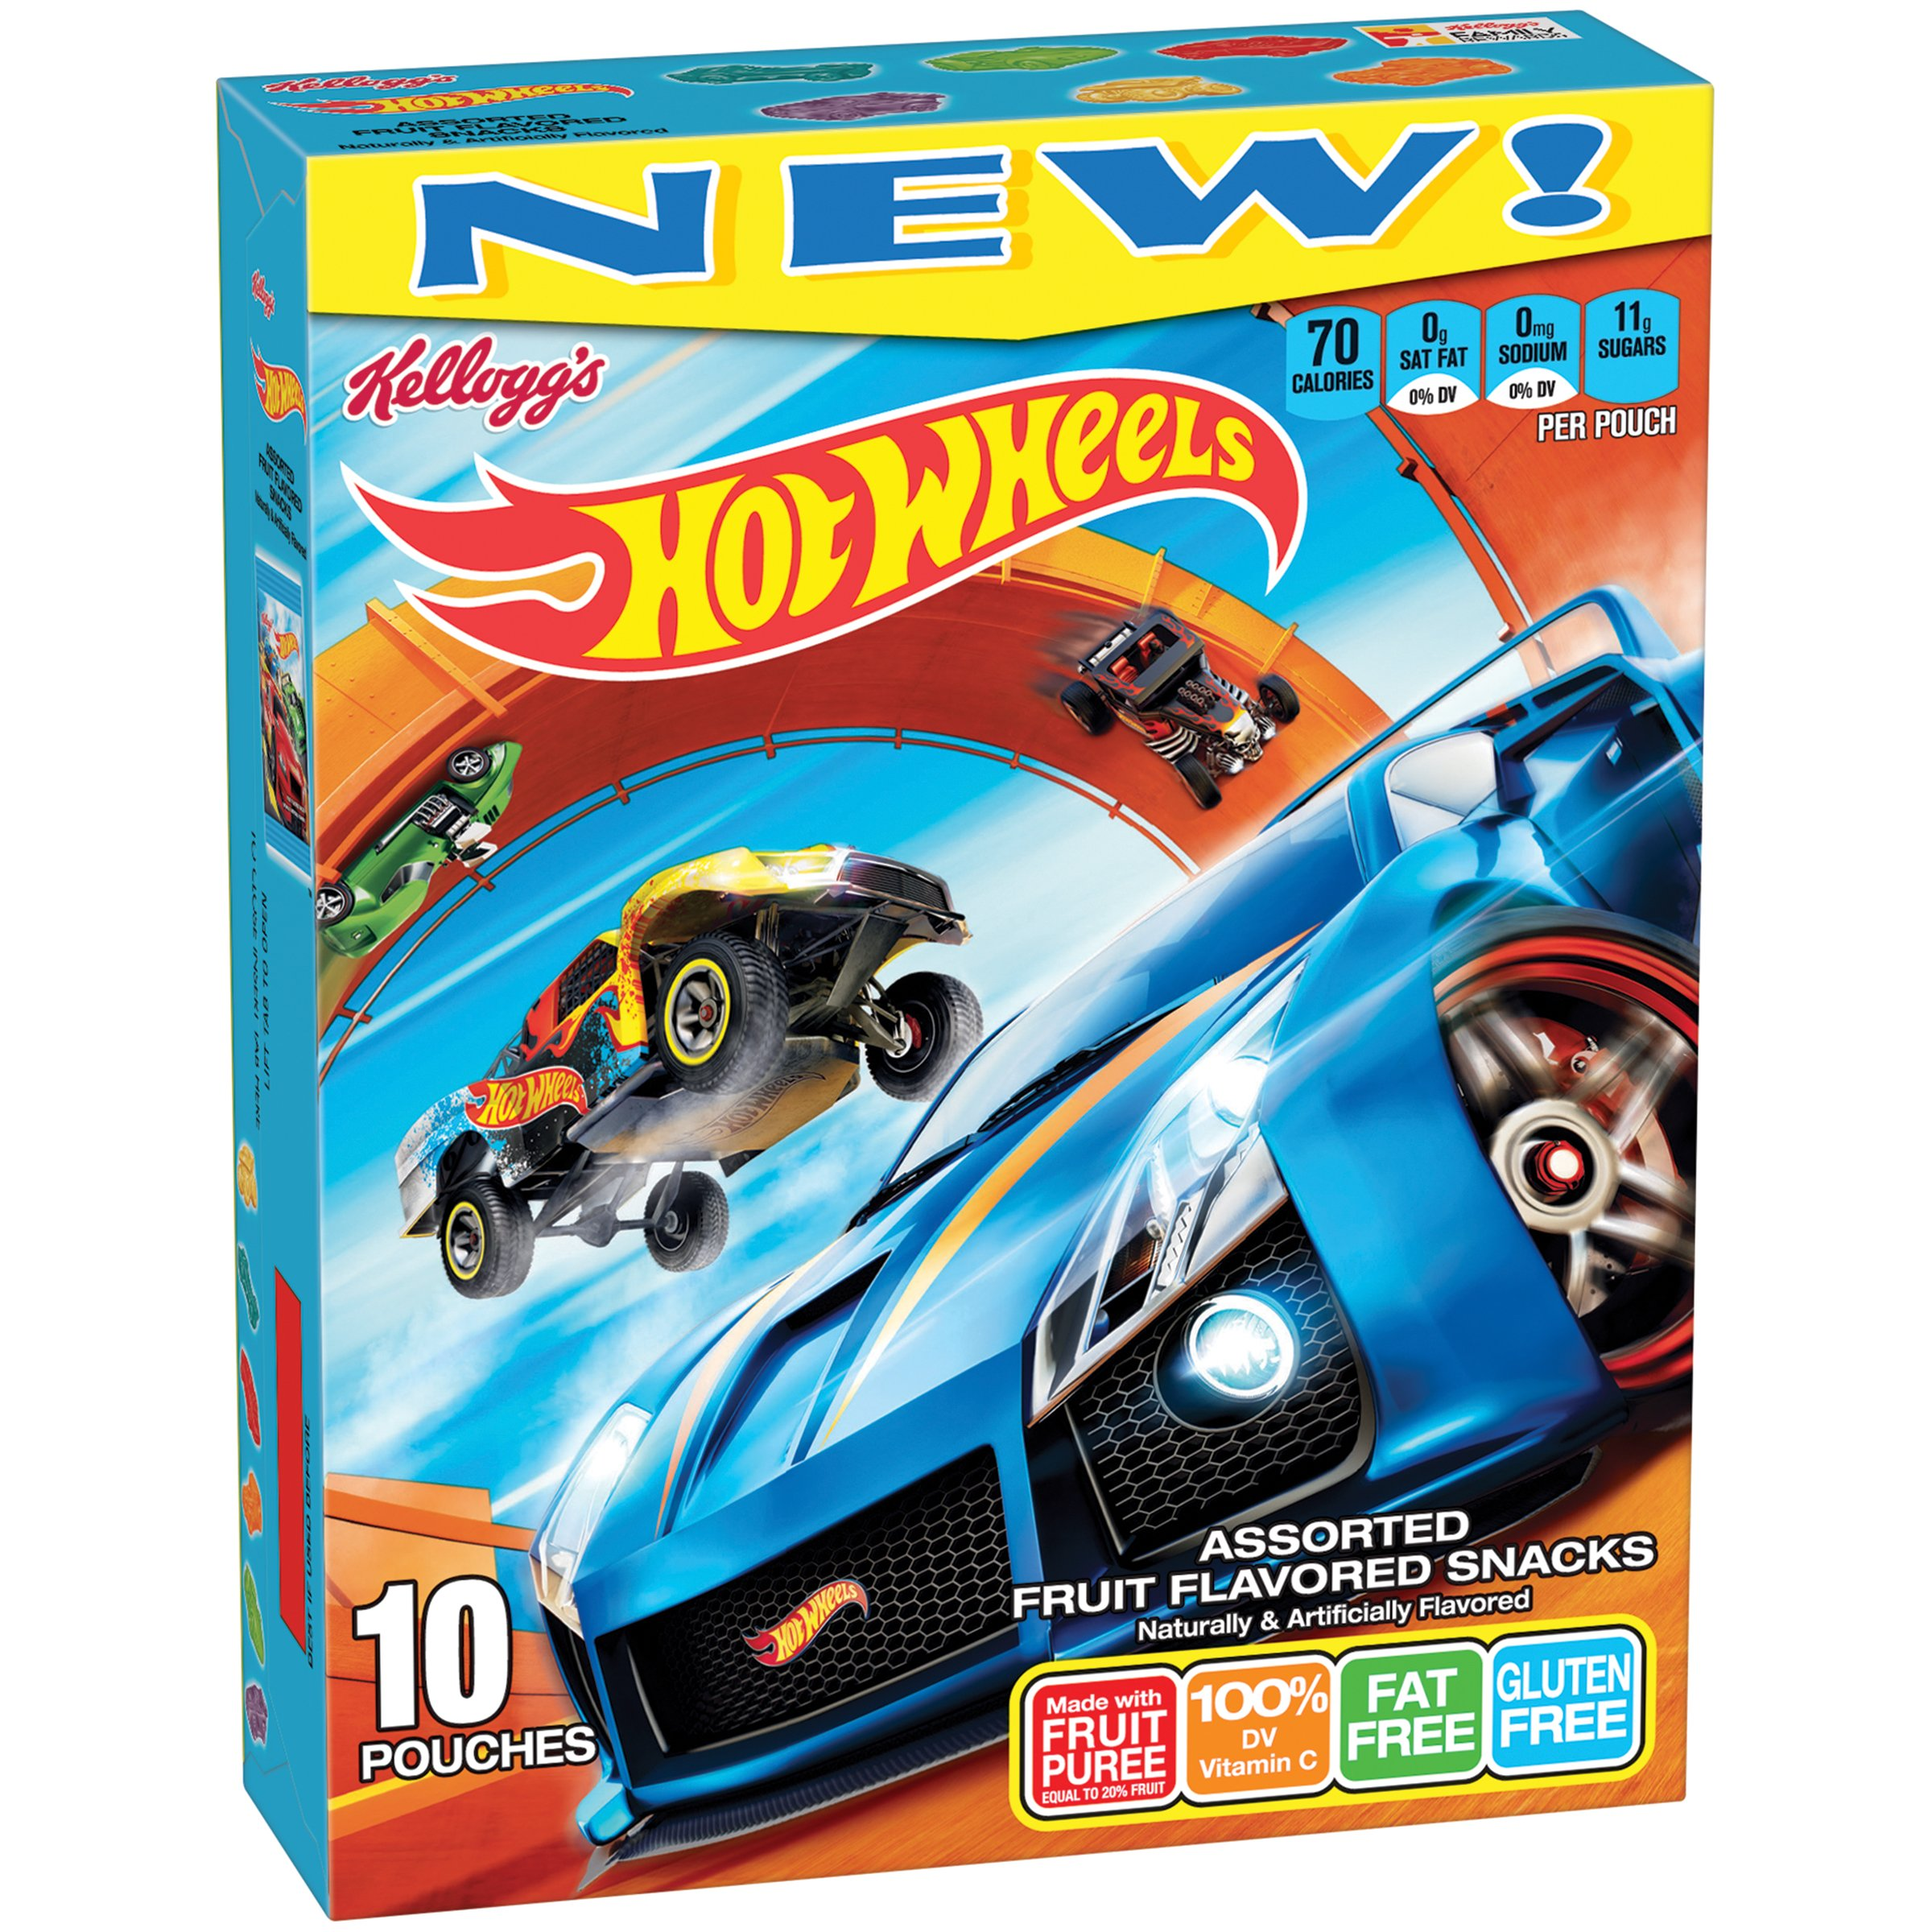 Fruit Flavored Snacks Kellogg's Hot Wheels, 10 Count, 8 Ounce